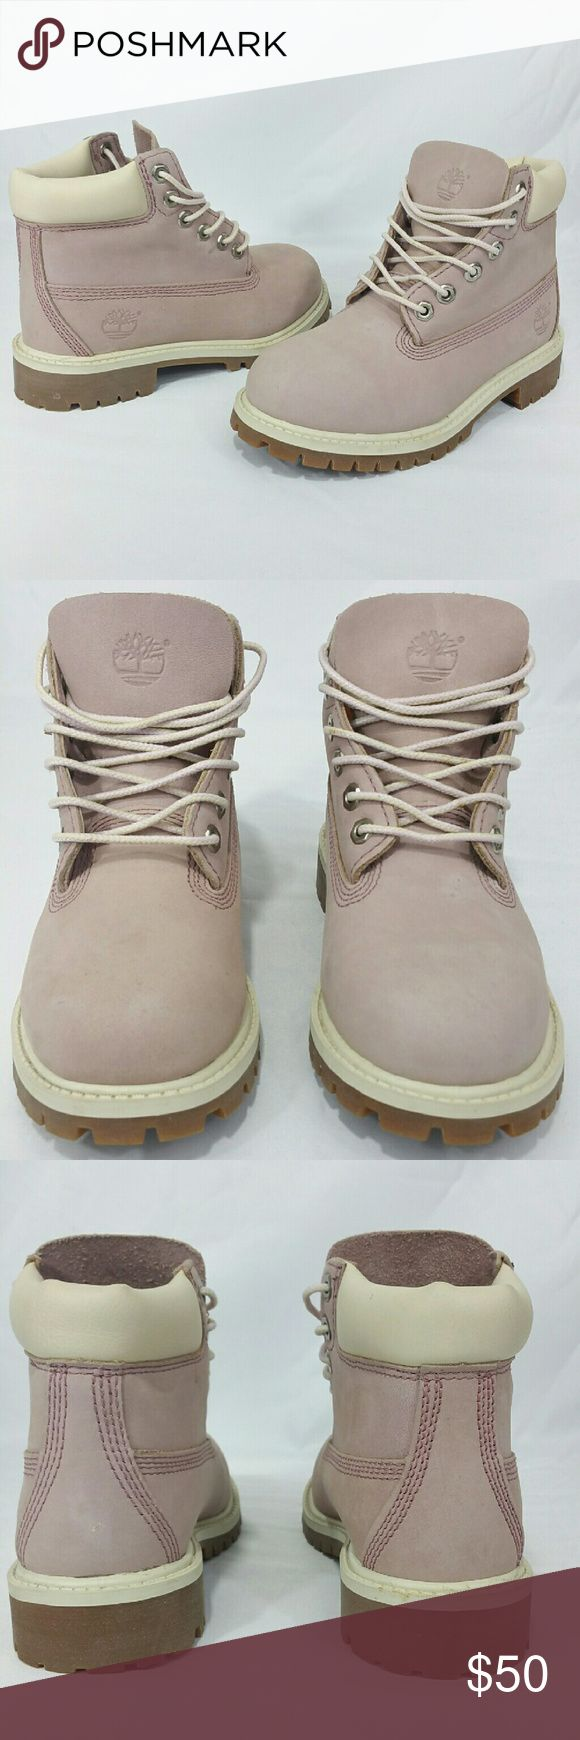 Girls Timberland Pink Sz 13 Boots 34792 suede Excellent Condition, sole like New Little Girls Size 13 Timberland Pink  Boots. Timberland Shoes Boots